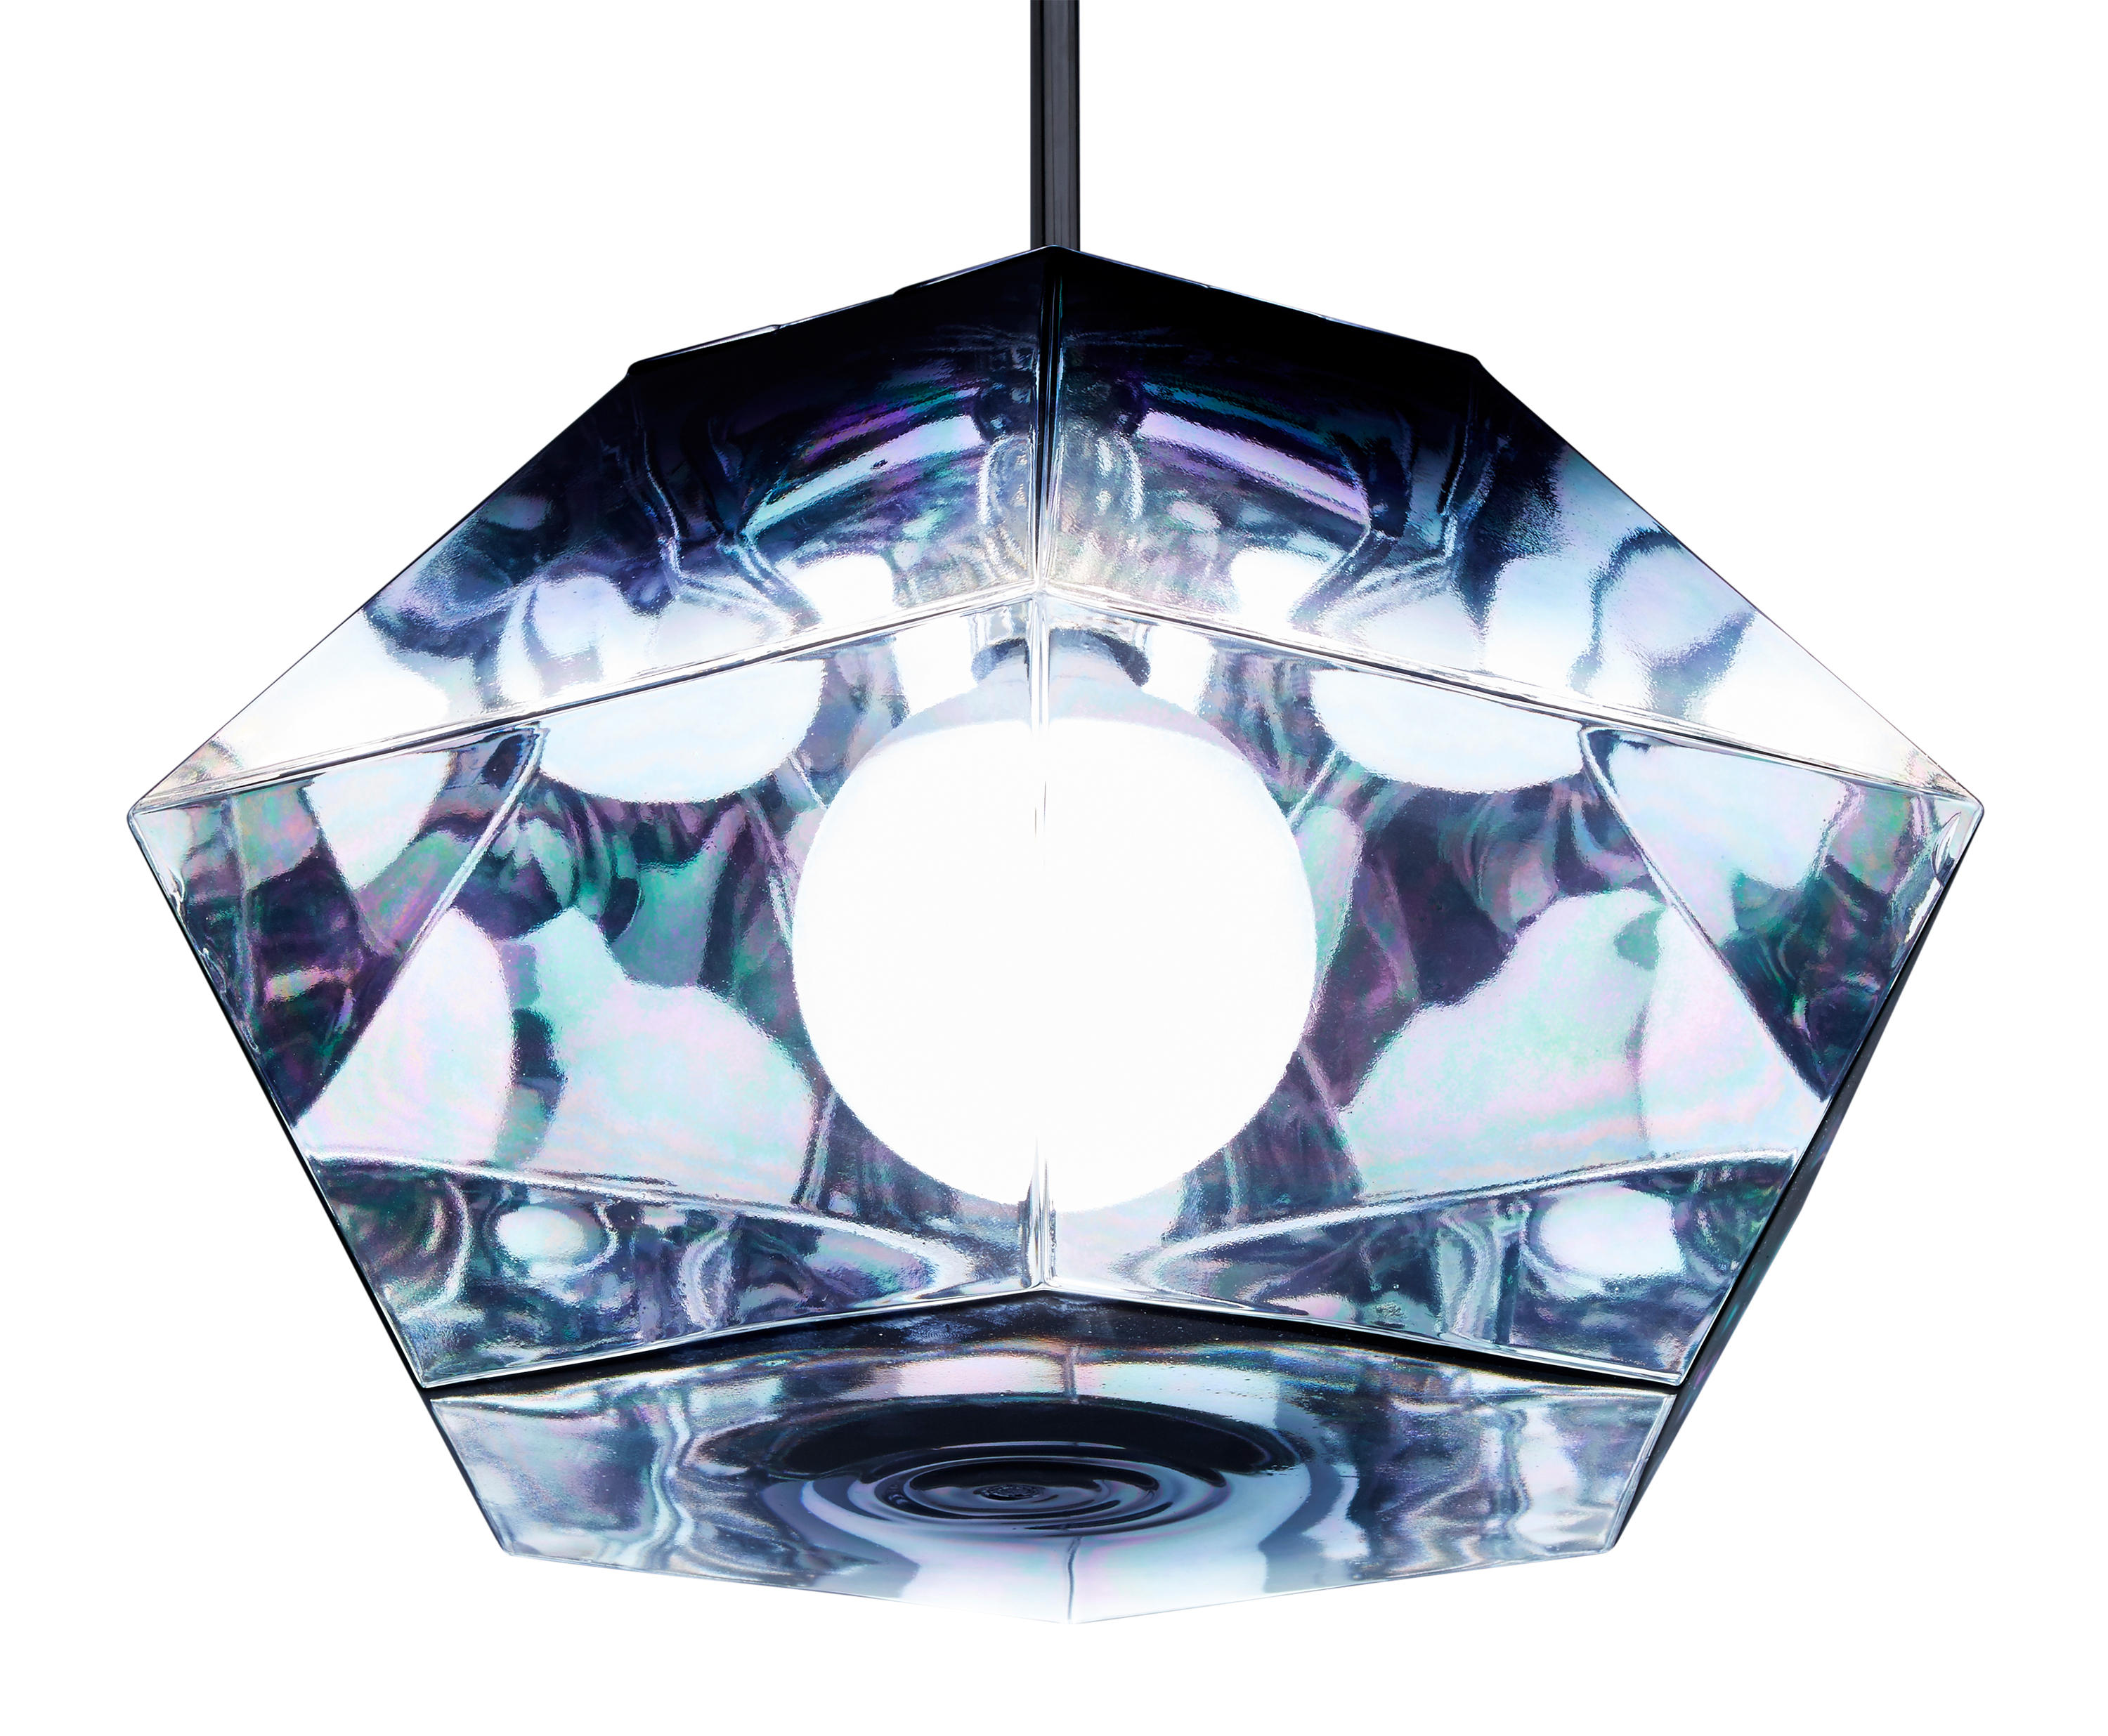 cut short pendant smoke general lighting from tom dixon. Black Bedroom Furniture Sets. Home Design Ideas